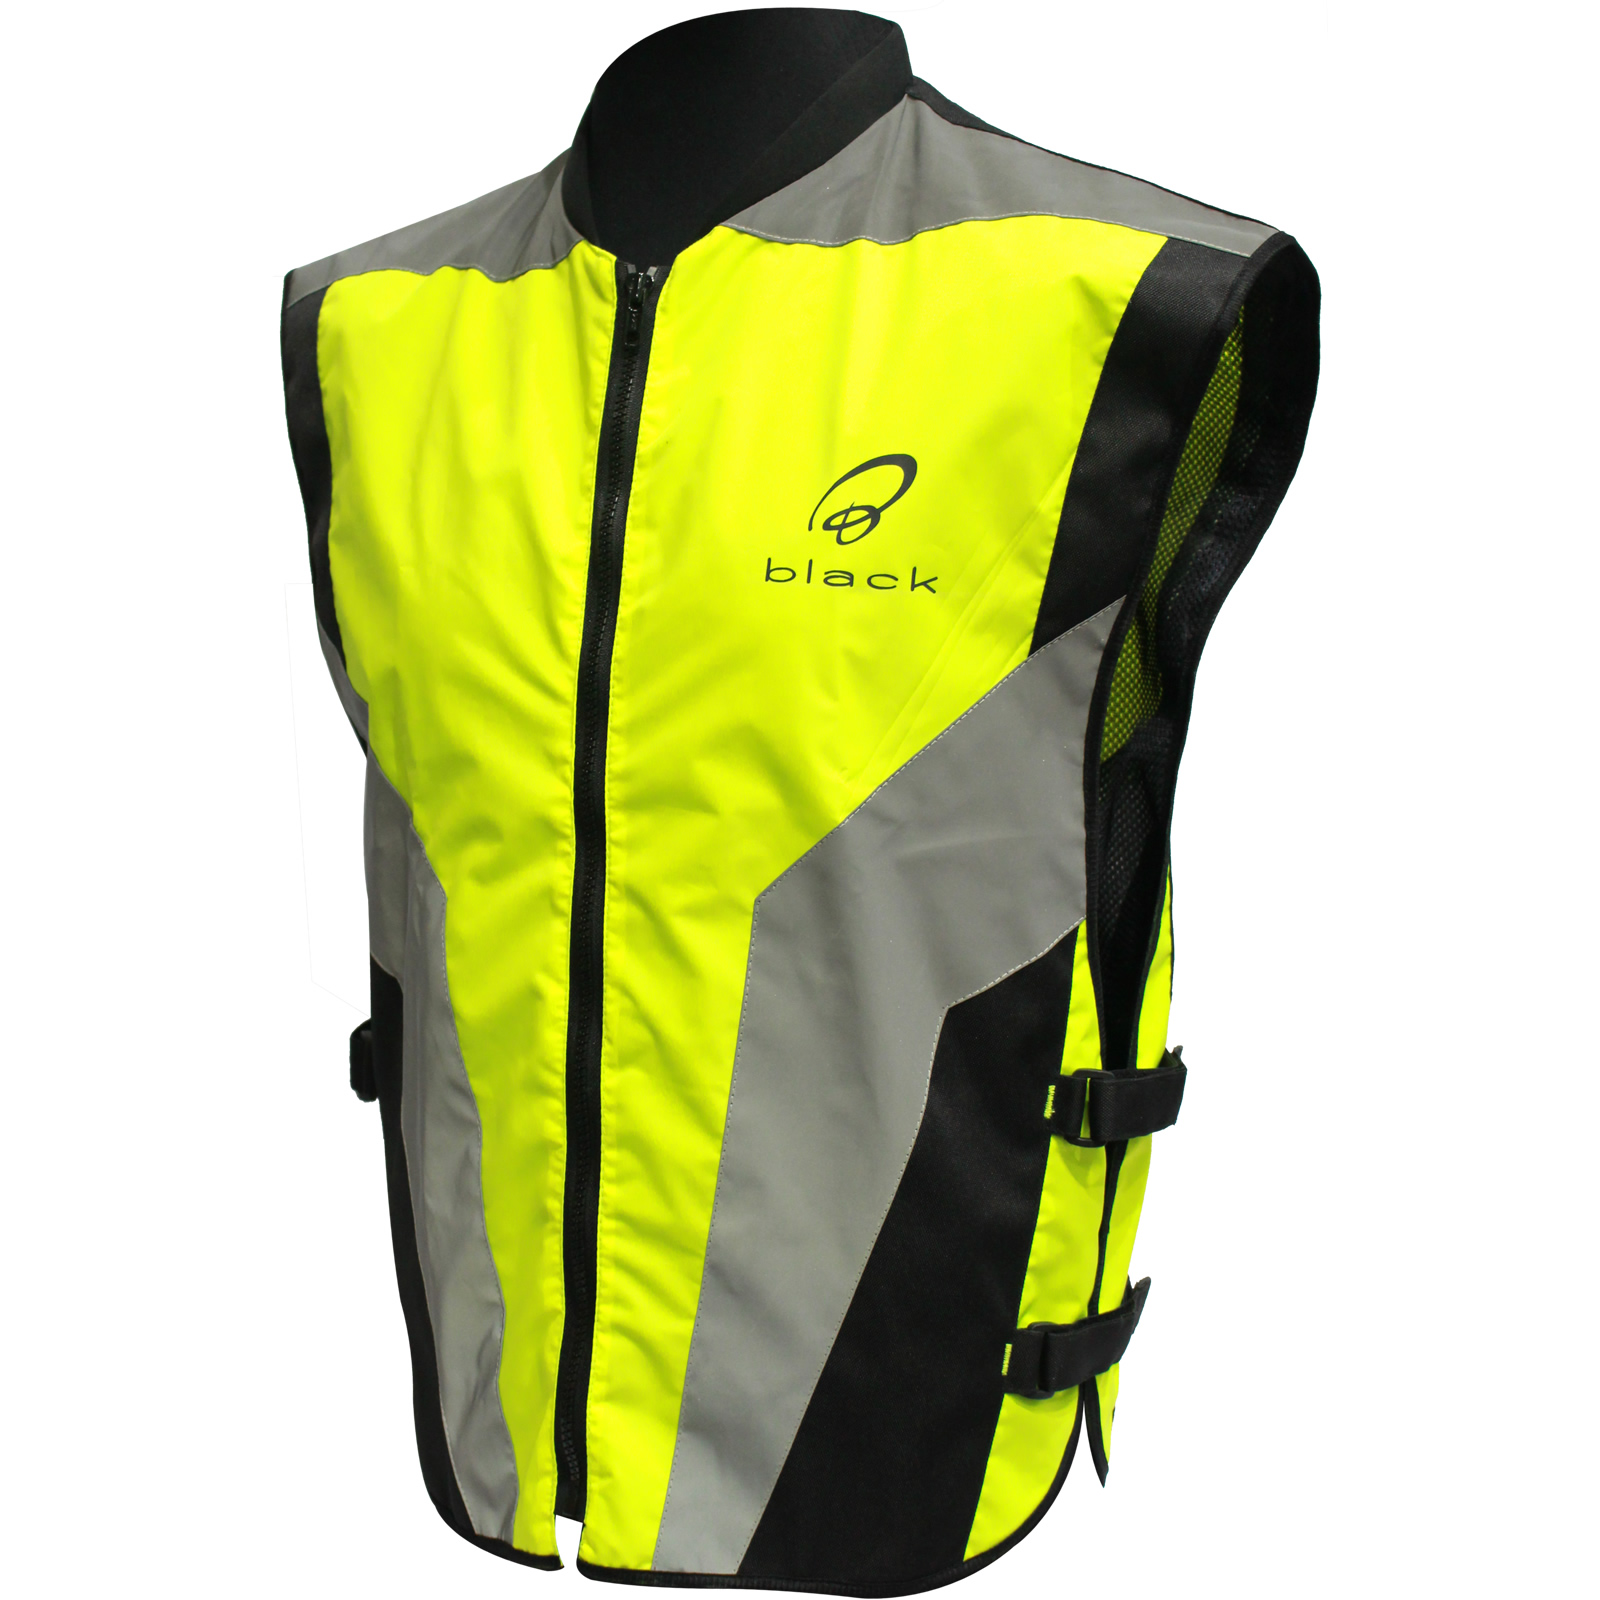 3m Products Australia Black Hi Vis Reflective Motorcycle Vest Xl Yellow Safety